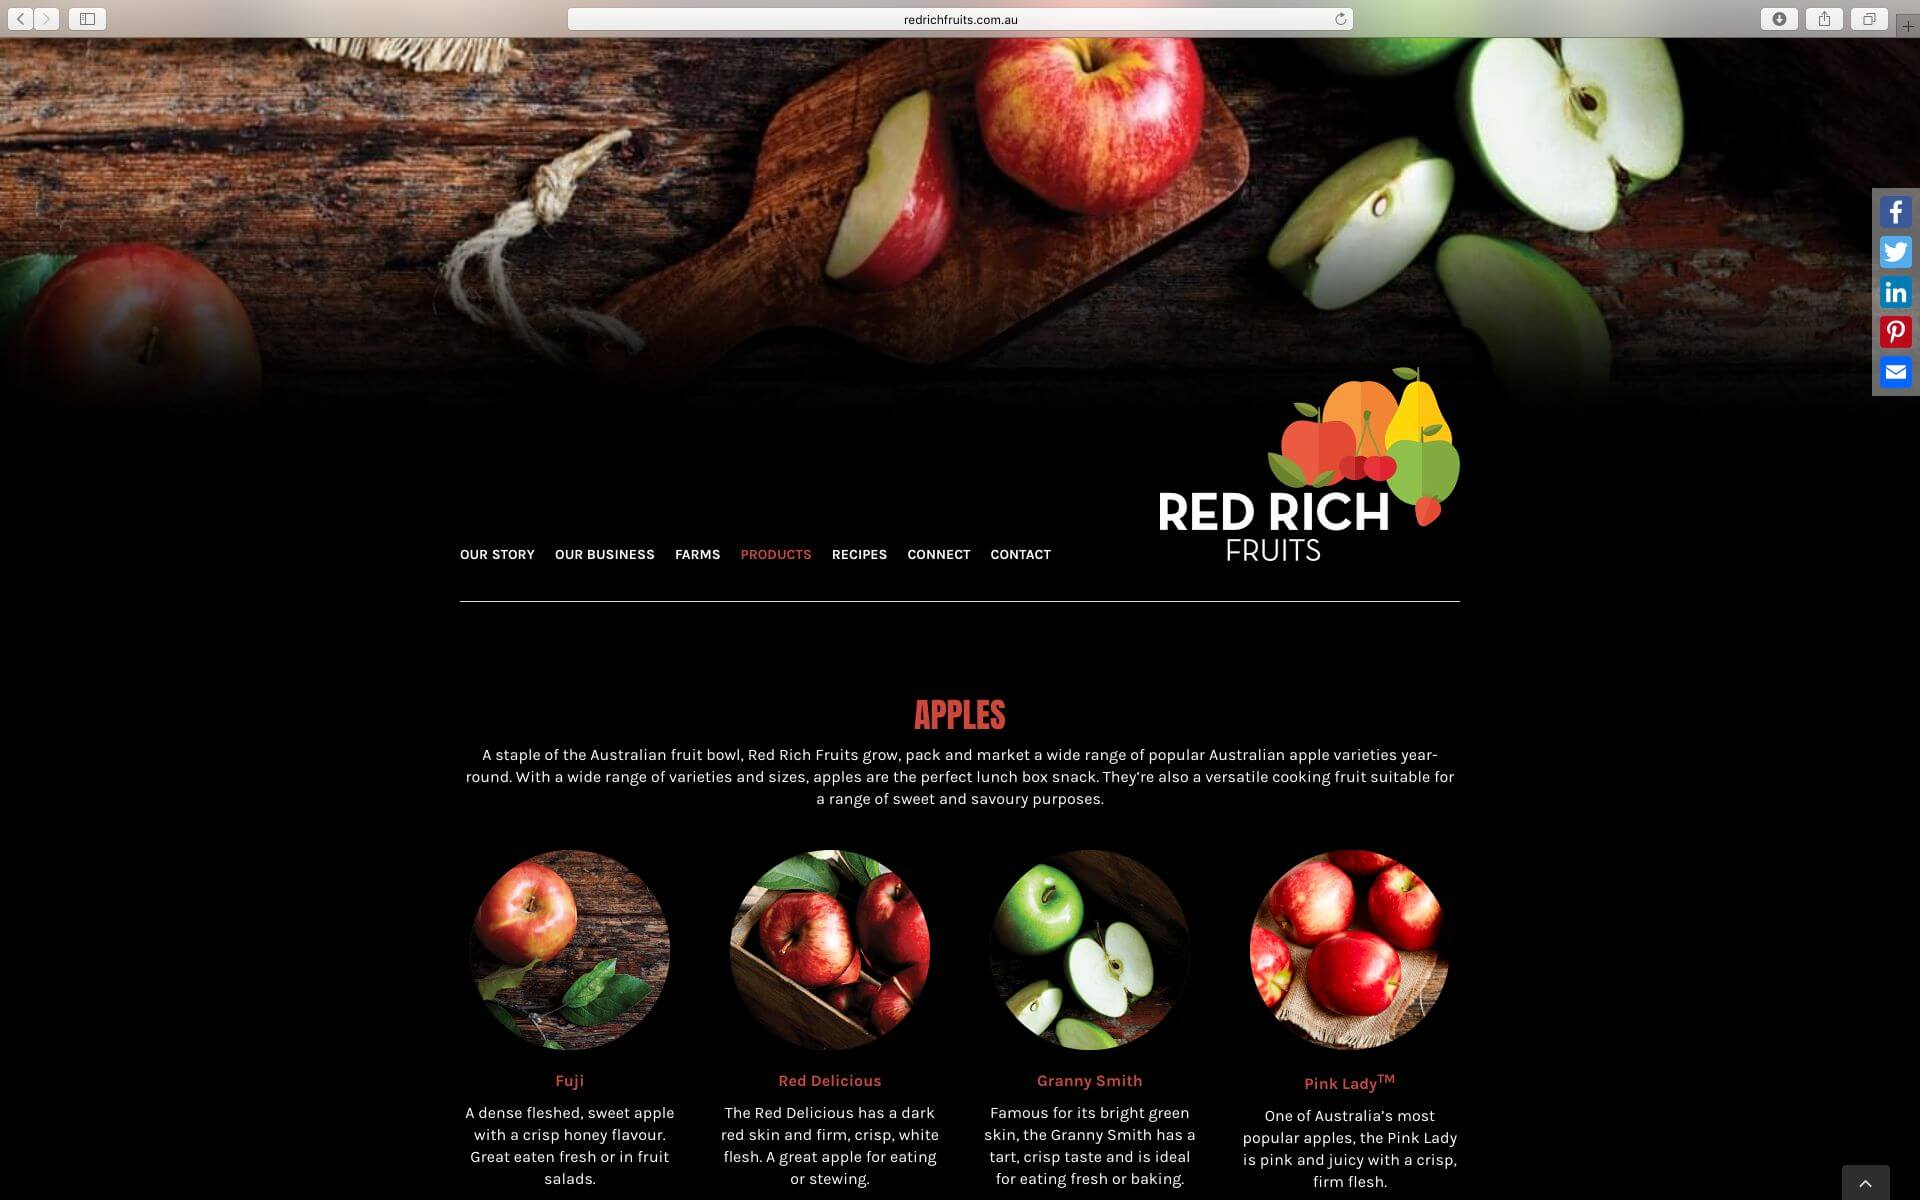 Red Rich Fruits Website